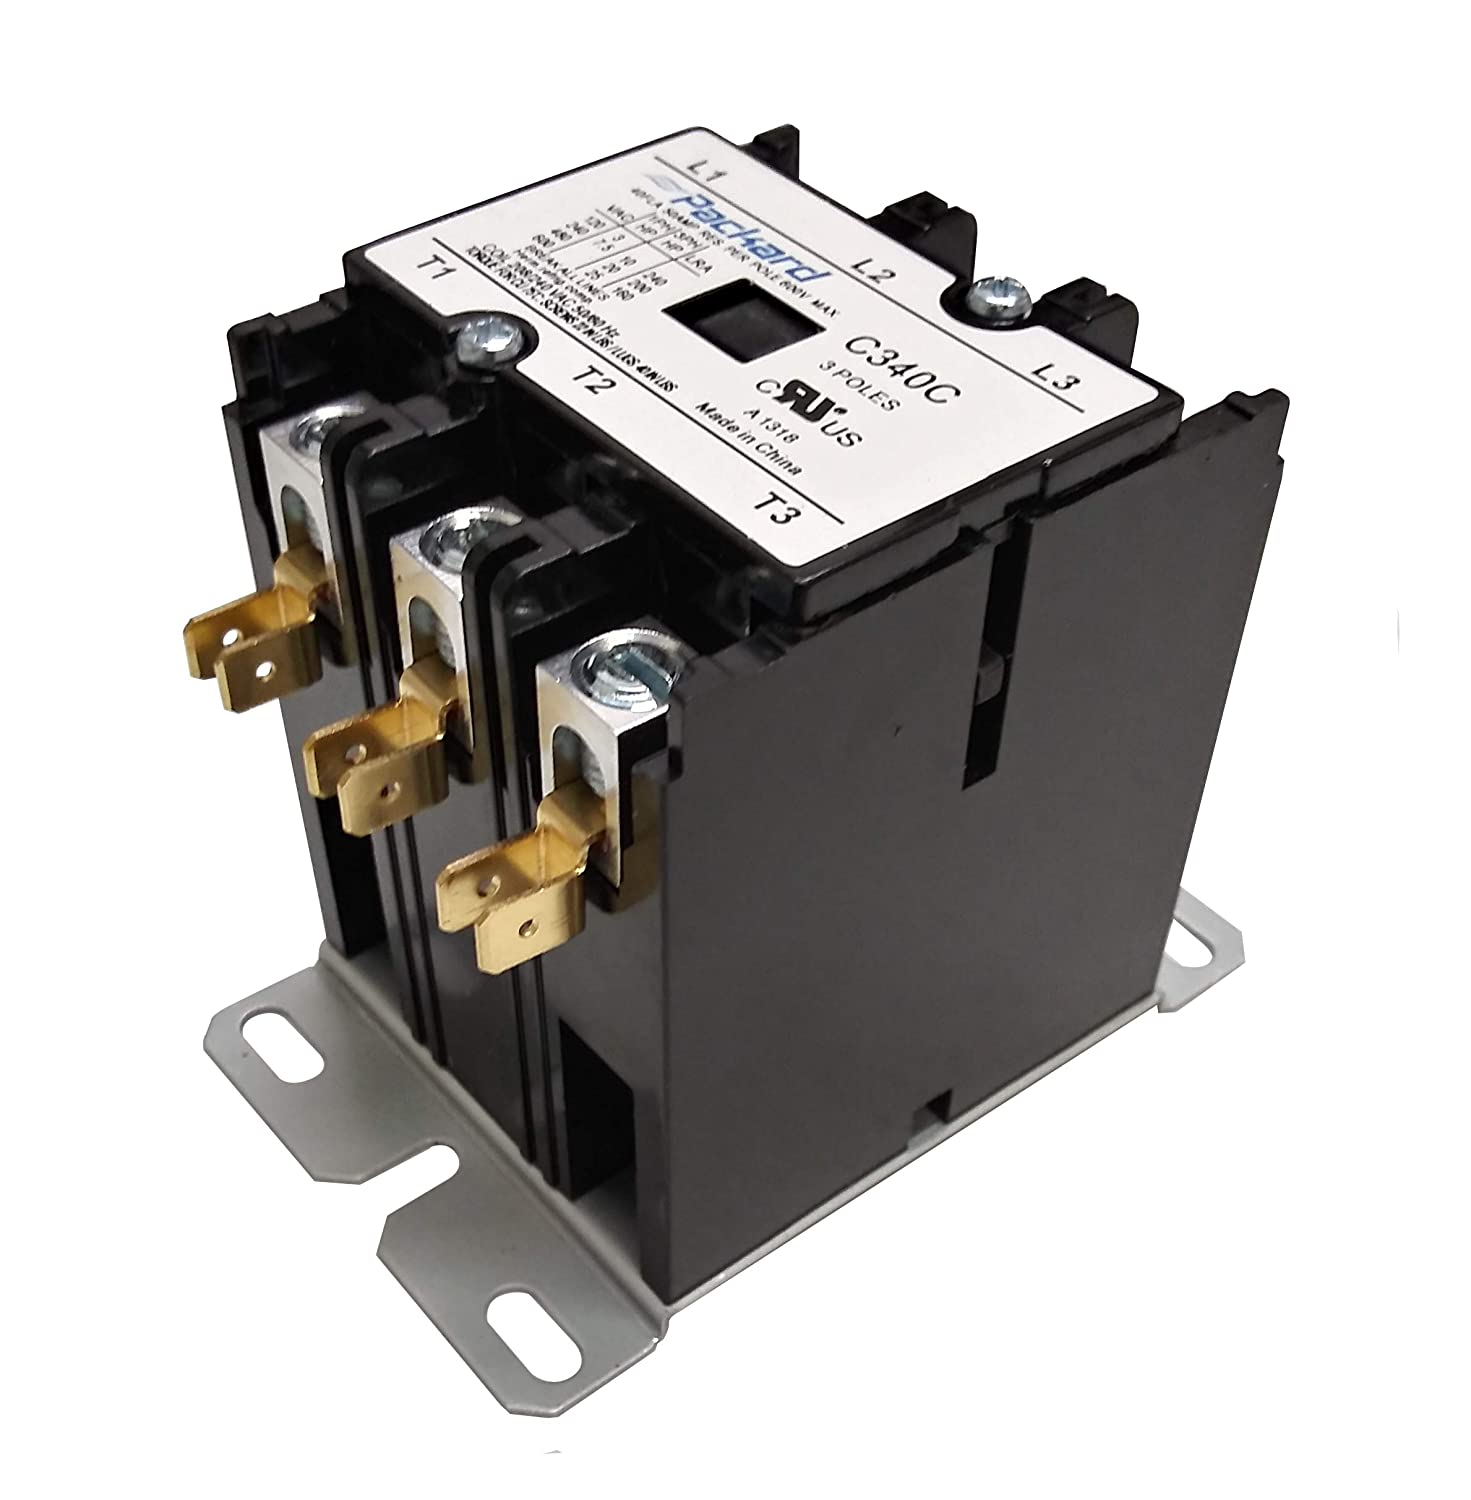 packard c340c 3 pole 40 amp contactor 208/240 volt coil contactor:  replacement household furnace electronic relays: amazon.com: industrial &  scientific  amazon.com